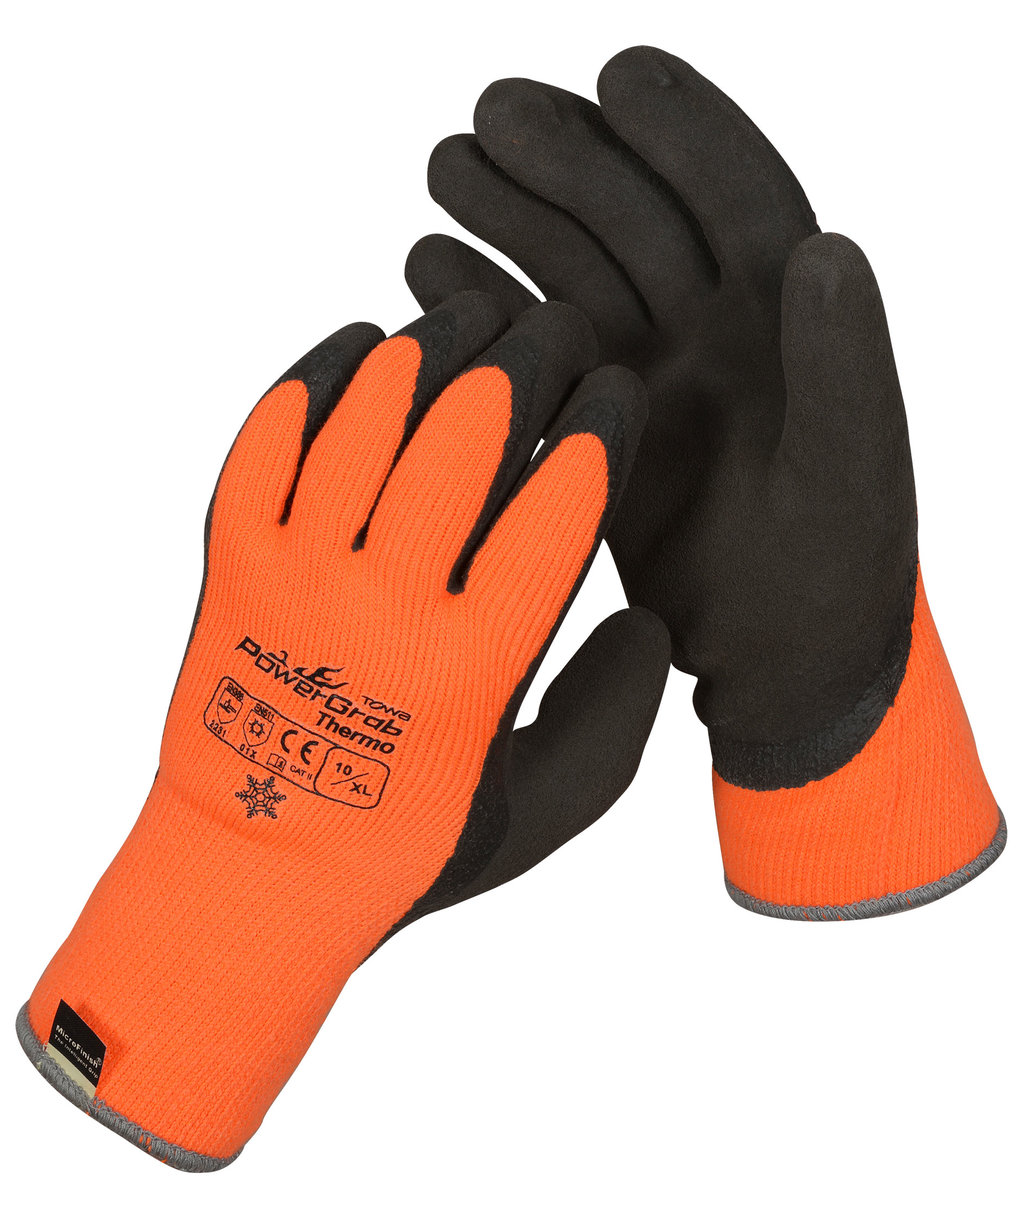 OX-ON PowerGrab Thermo arbejdshandsker, Orange/Sort